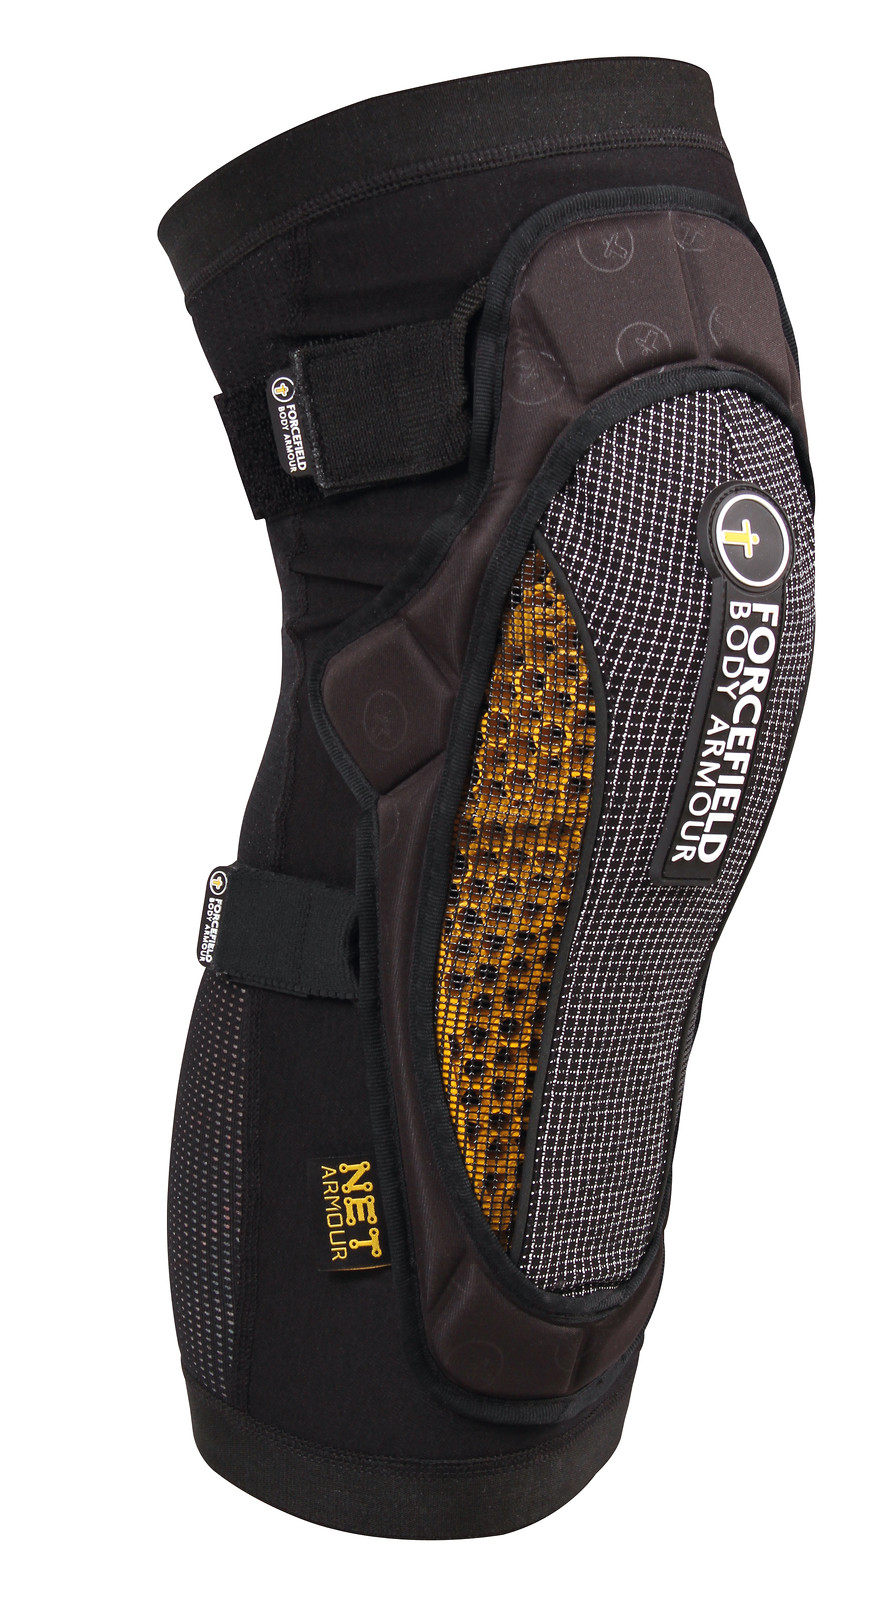 Forcefield Body Armour Grid Knee Protector Reviews